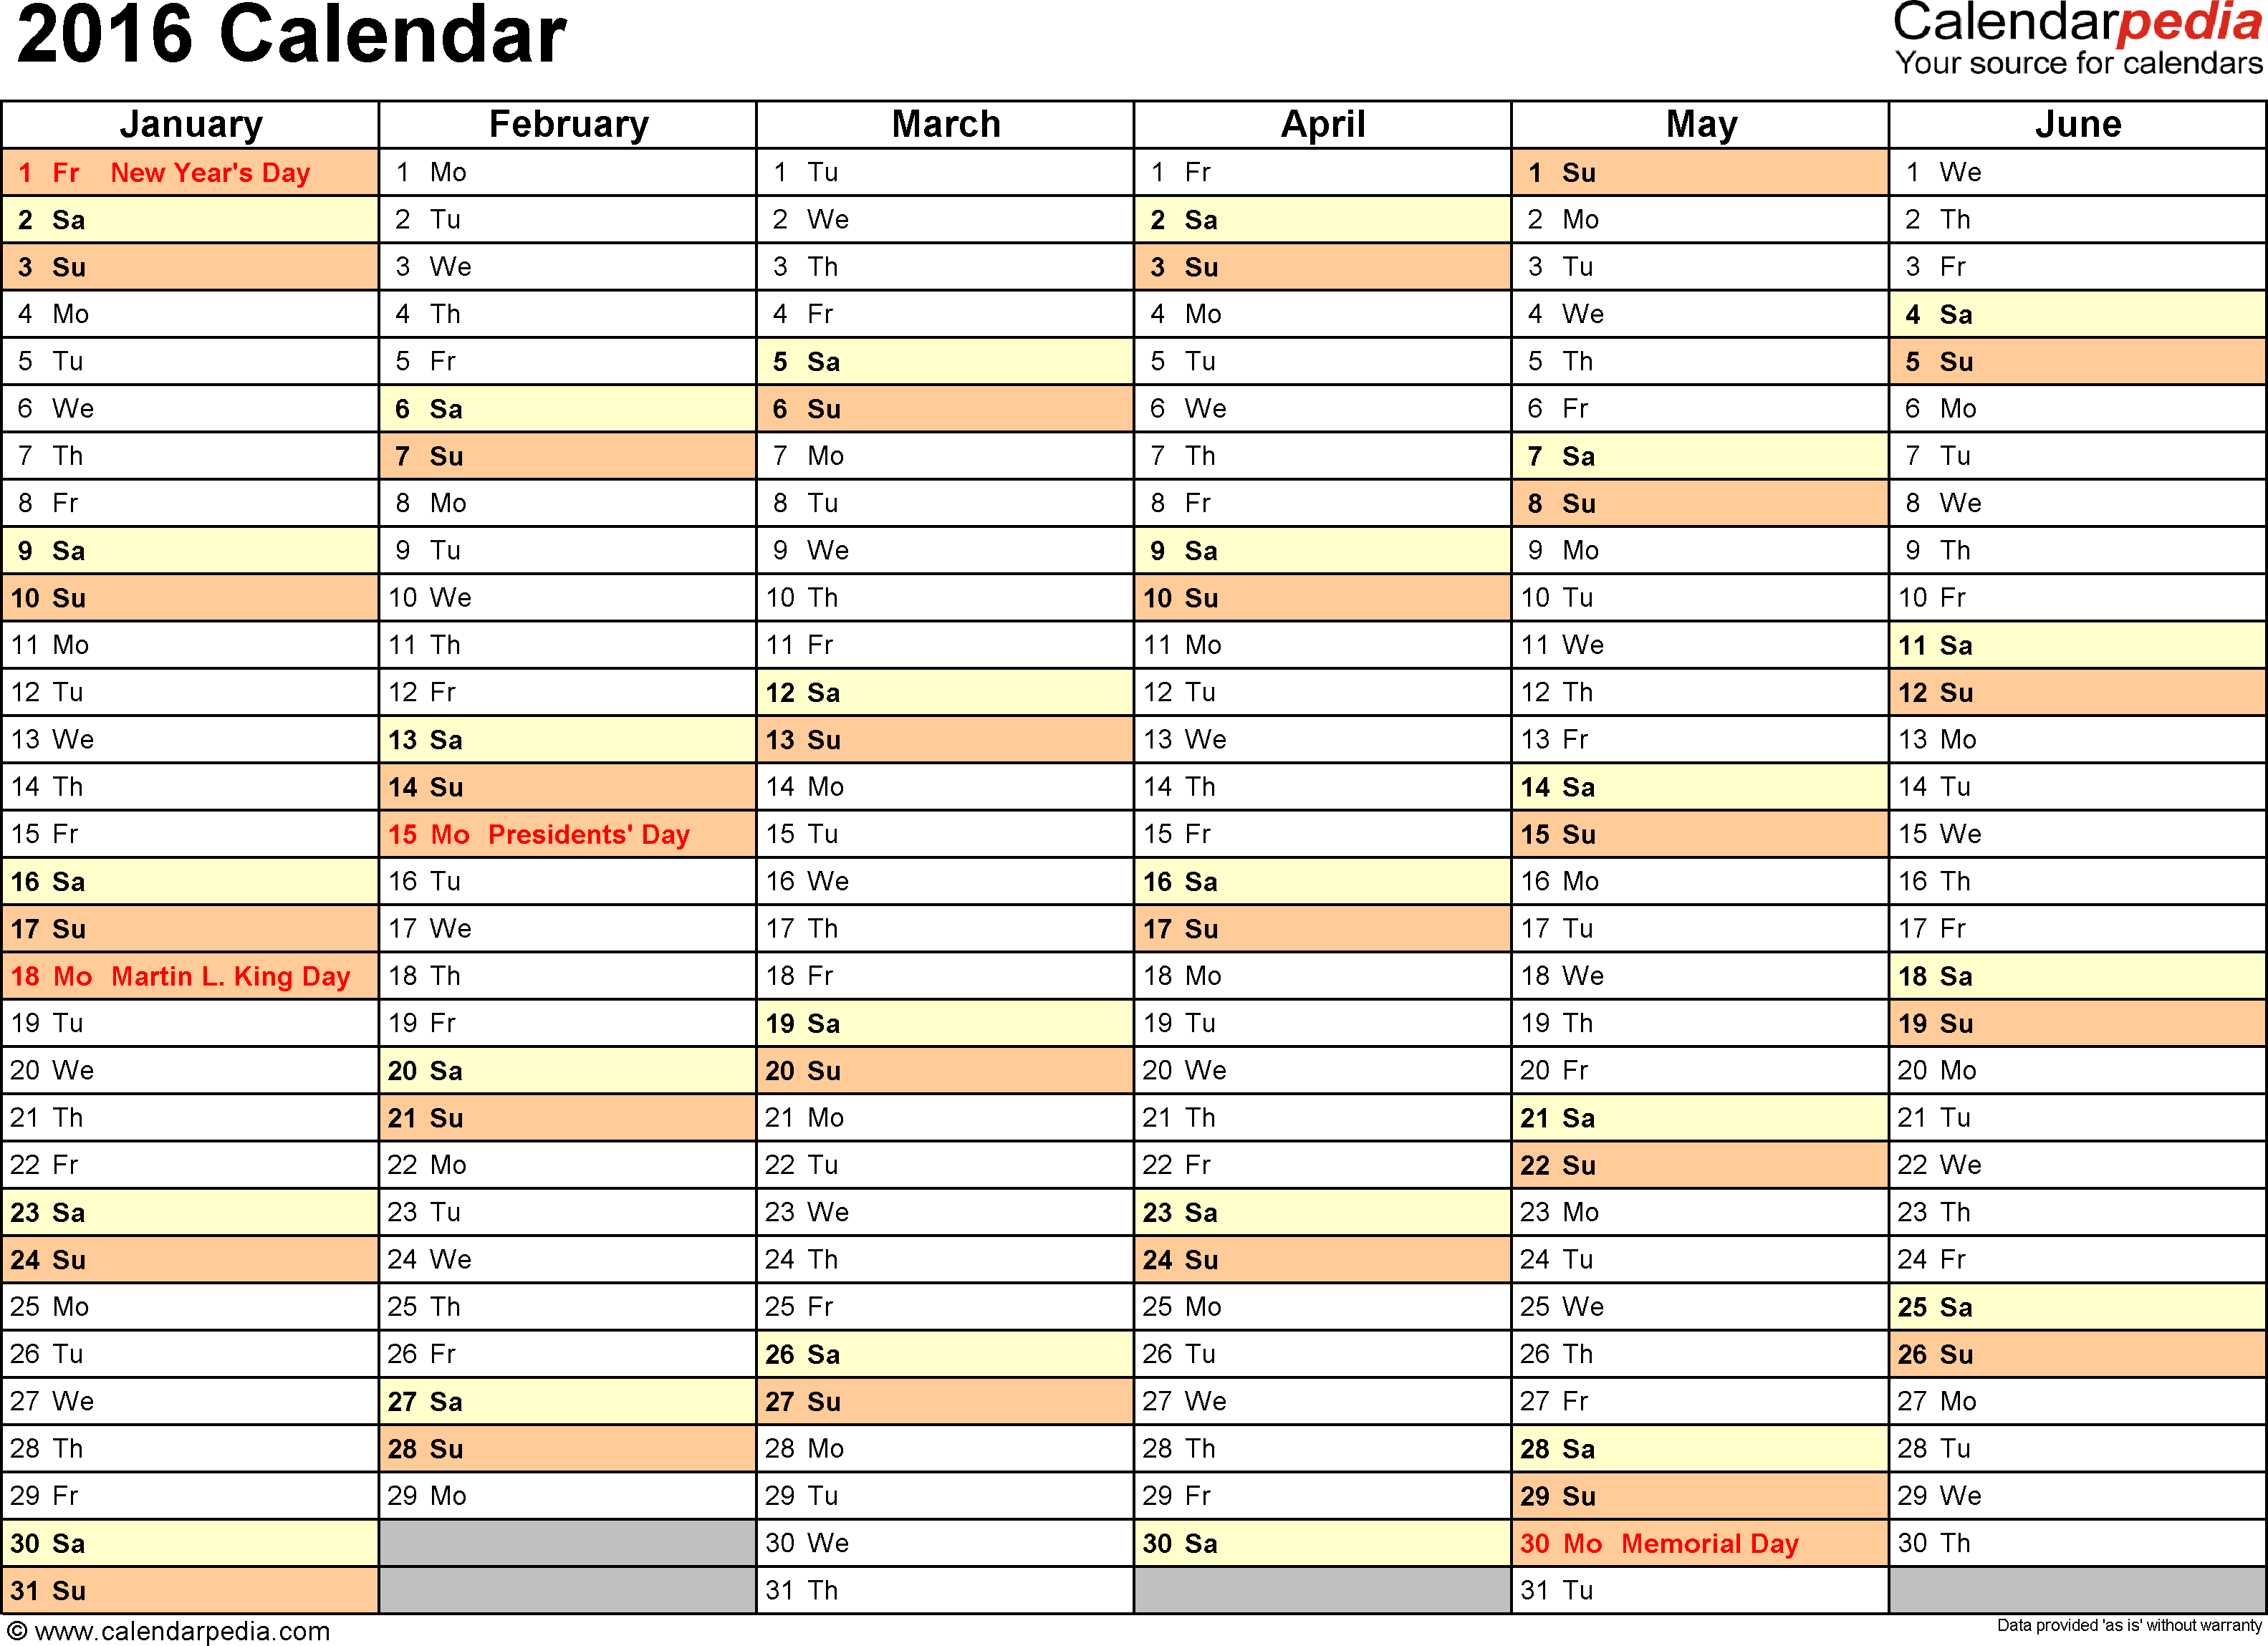 Ediblewildsus  Terrific  Calendar  Download  Free Printable Excel Templates Xls With Interesting Template   Calendar For Excel Months Horizontally  Pages Landscape Orientation With Breathtaking Alt Enter Excel Also How To Find Circular Reference In Excel In Addition Using Sumif In Excel And Open Excel File Online As Well As Count Characters In Excel Cell Additionally Freeze Header In Excel From Calendarpediacom With Ediblewildsus  Interesting  Calendar  Download  Free Printable Excel Templates Xls With Breathtaking Template   Calendar For Excel Months Horizontally  Pages Landscape Orientation And Terrific Alt Enter Excel Also How To Find Circular Reference In Excel In Addition Using Sumif In Excel From Calendarpediacom